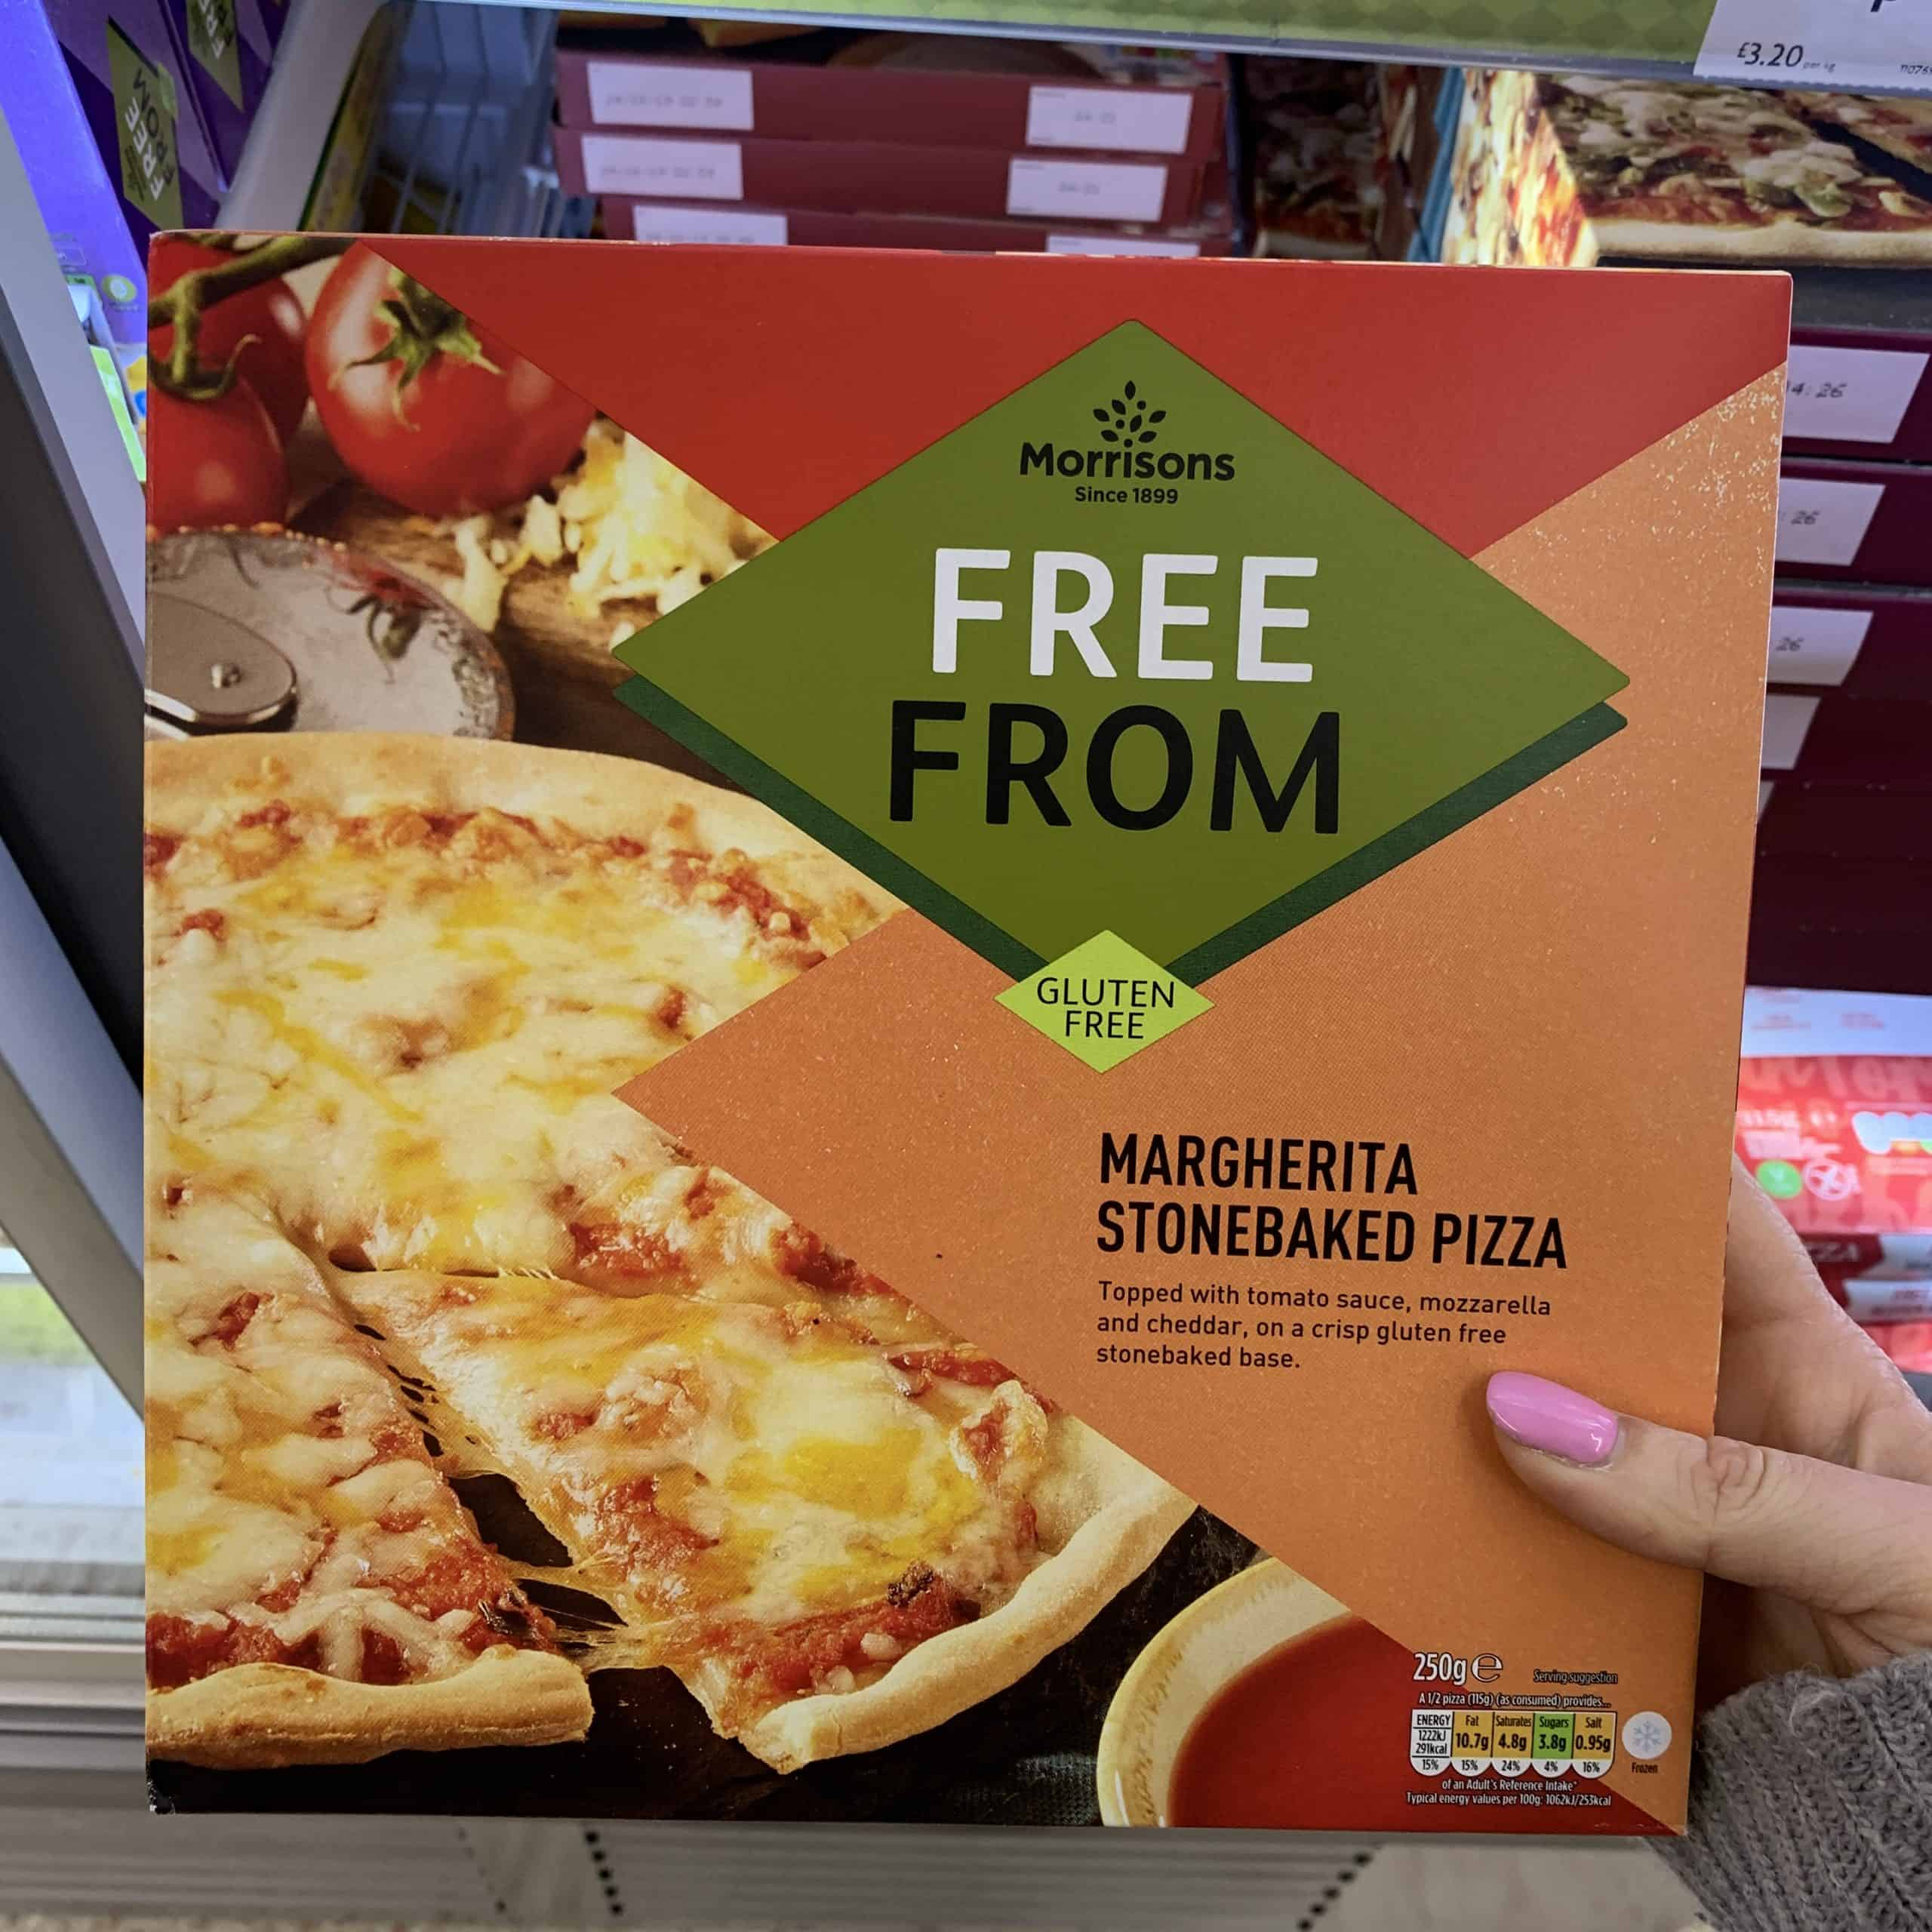 new gluten free products uk supermarkets 2020 10